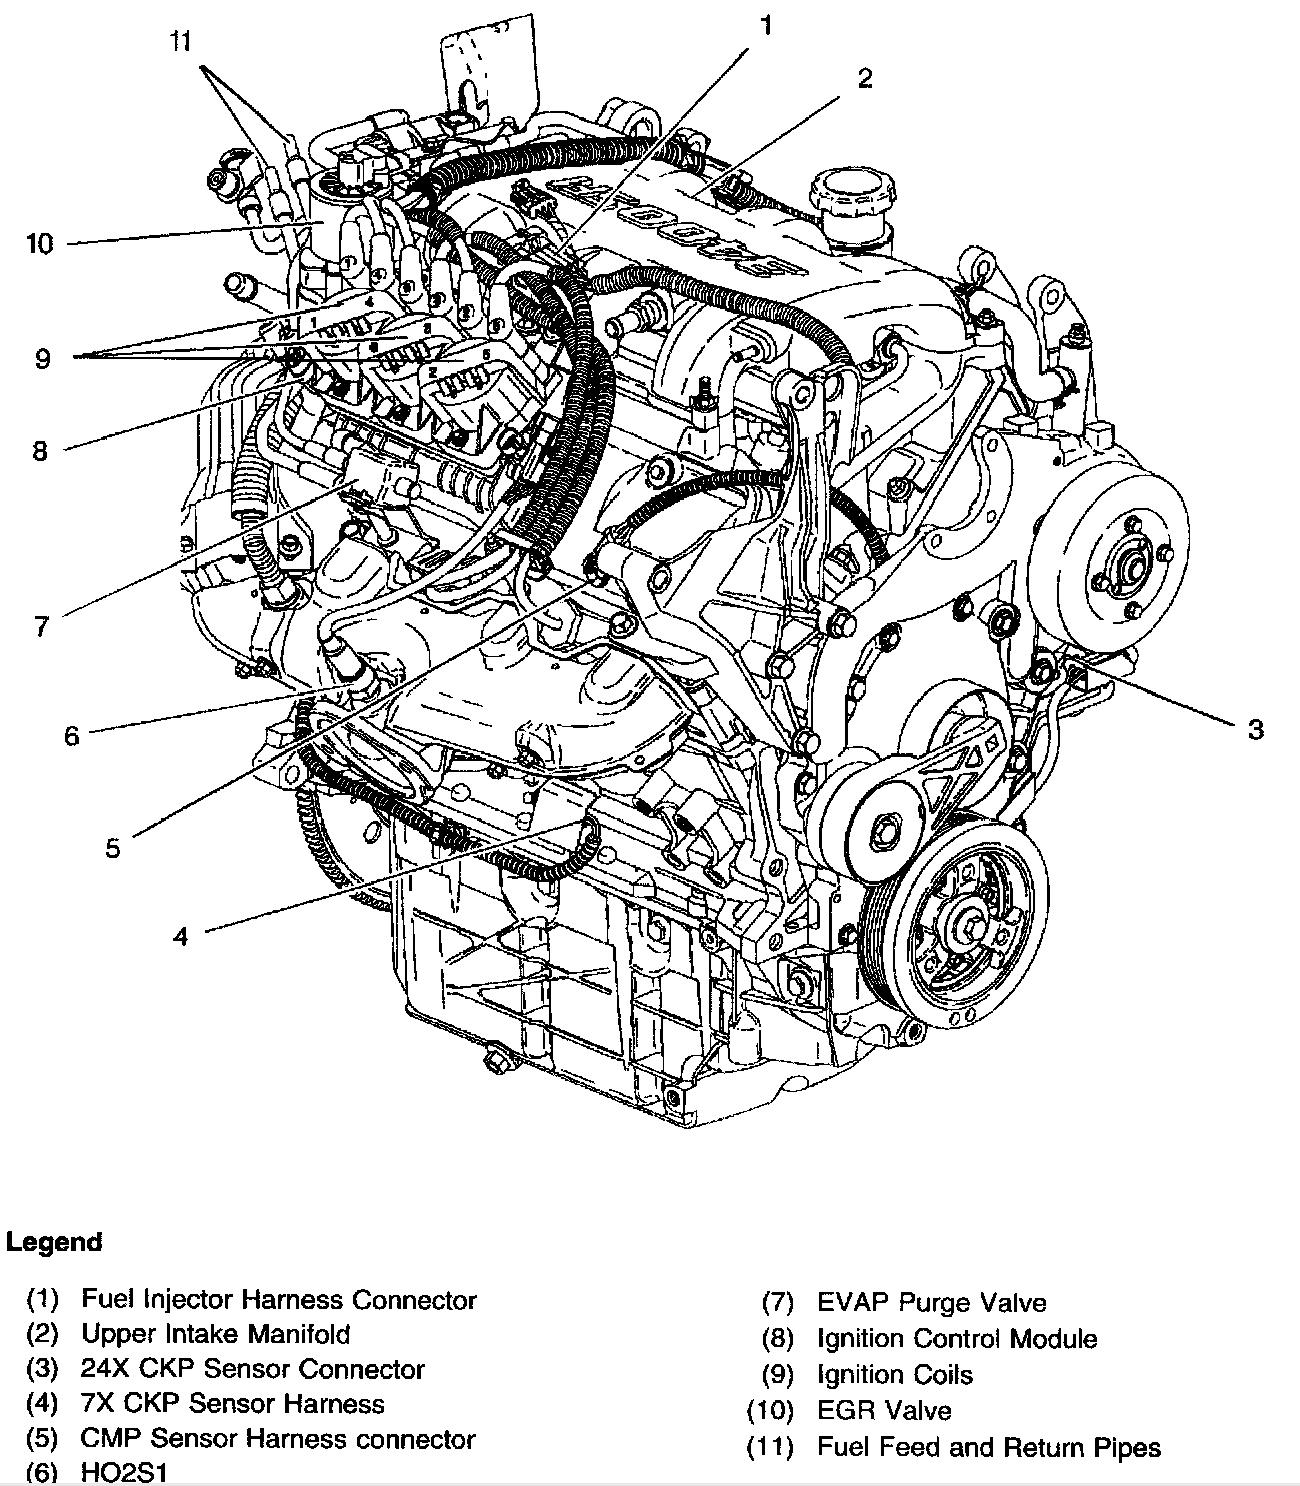 DIAGRAM] 1999 Chevy Venture Engine Diagram 3400 Sfi FULL Version HD Quality  3400 Sfi - LOTH-DIAGRAM.EXPERTSUNIVERSITY.ITDiagram Database - Expertsuniversity.it